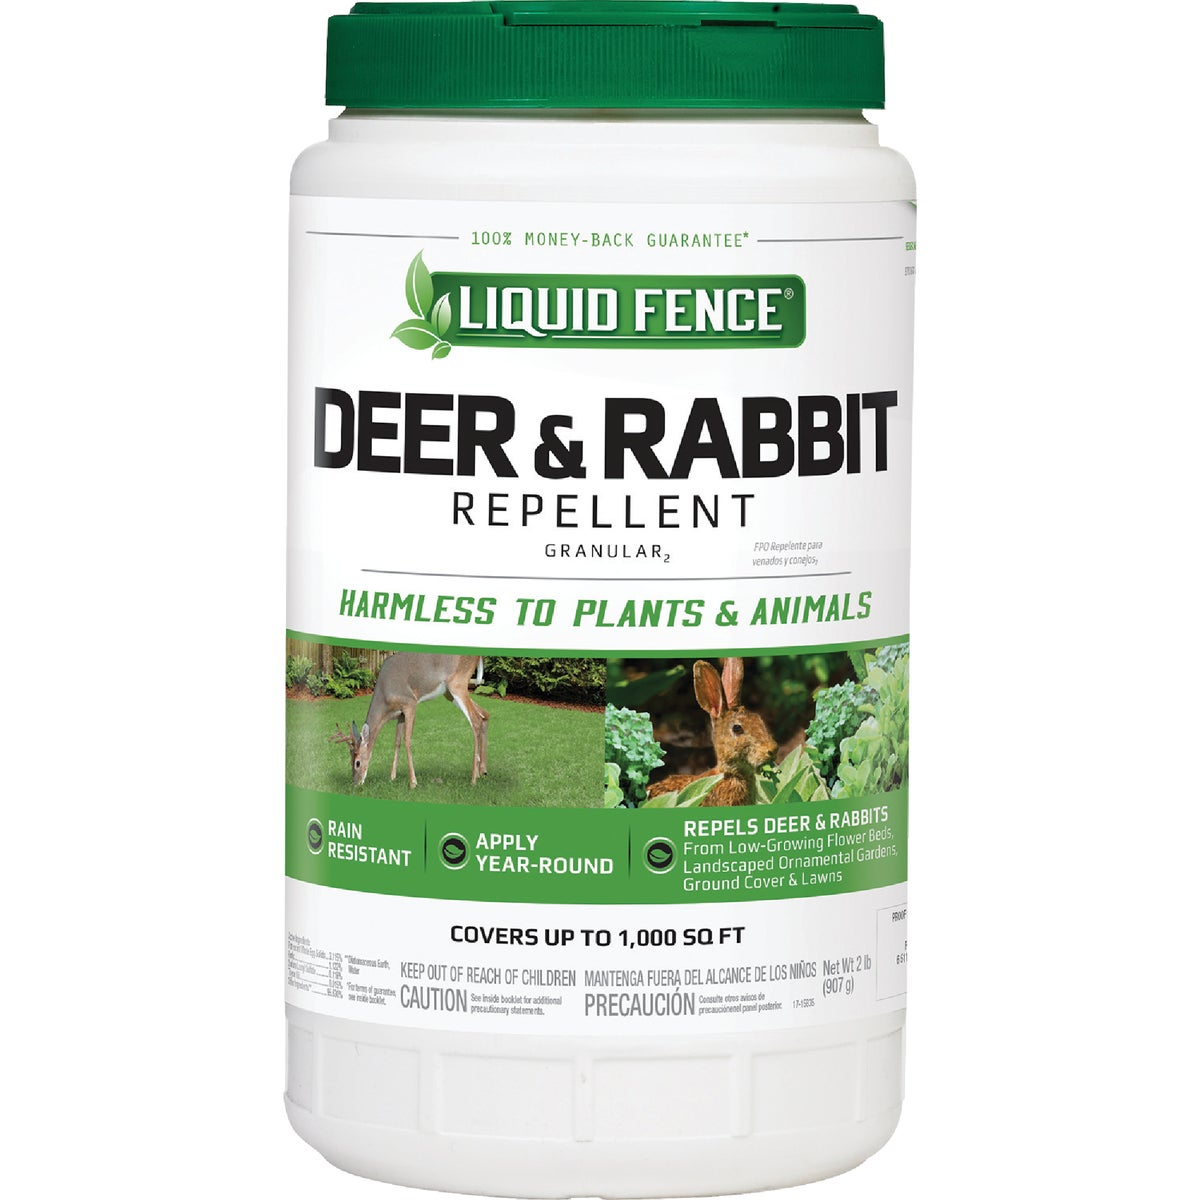 2LB GRAN DEER & RAB REP - 266 by United Industries Co